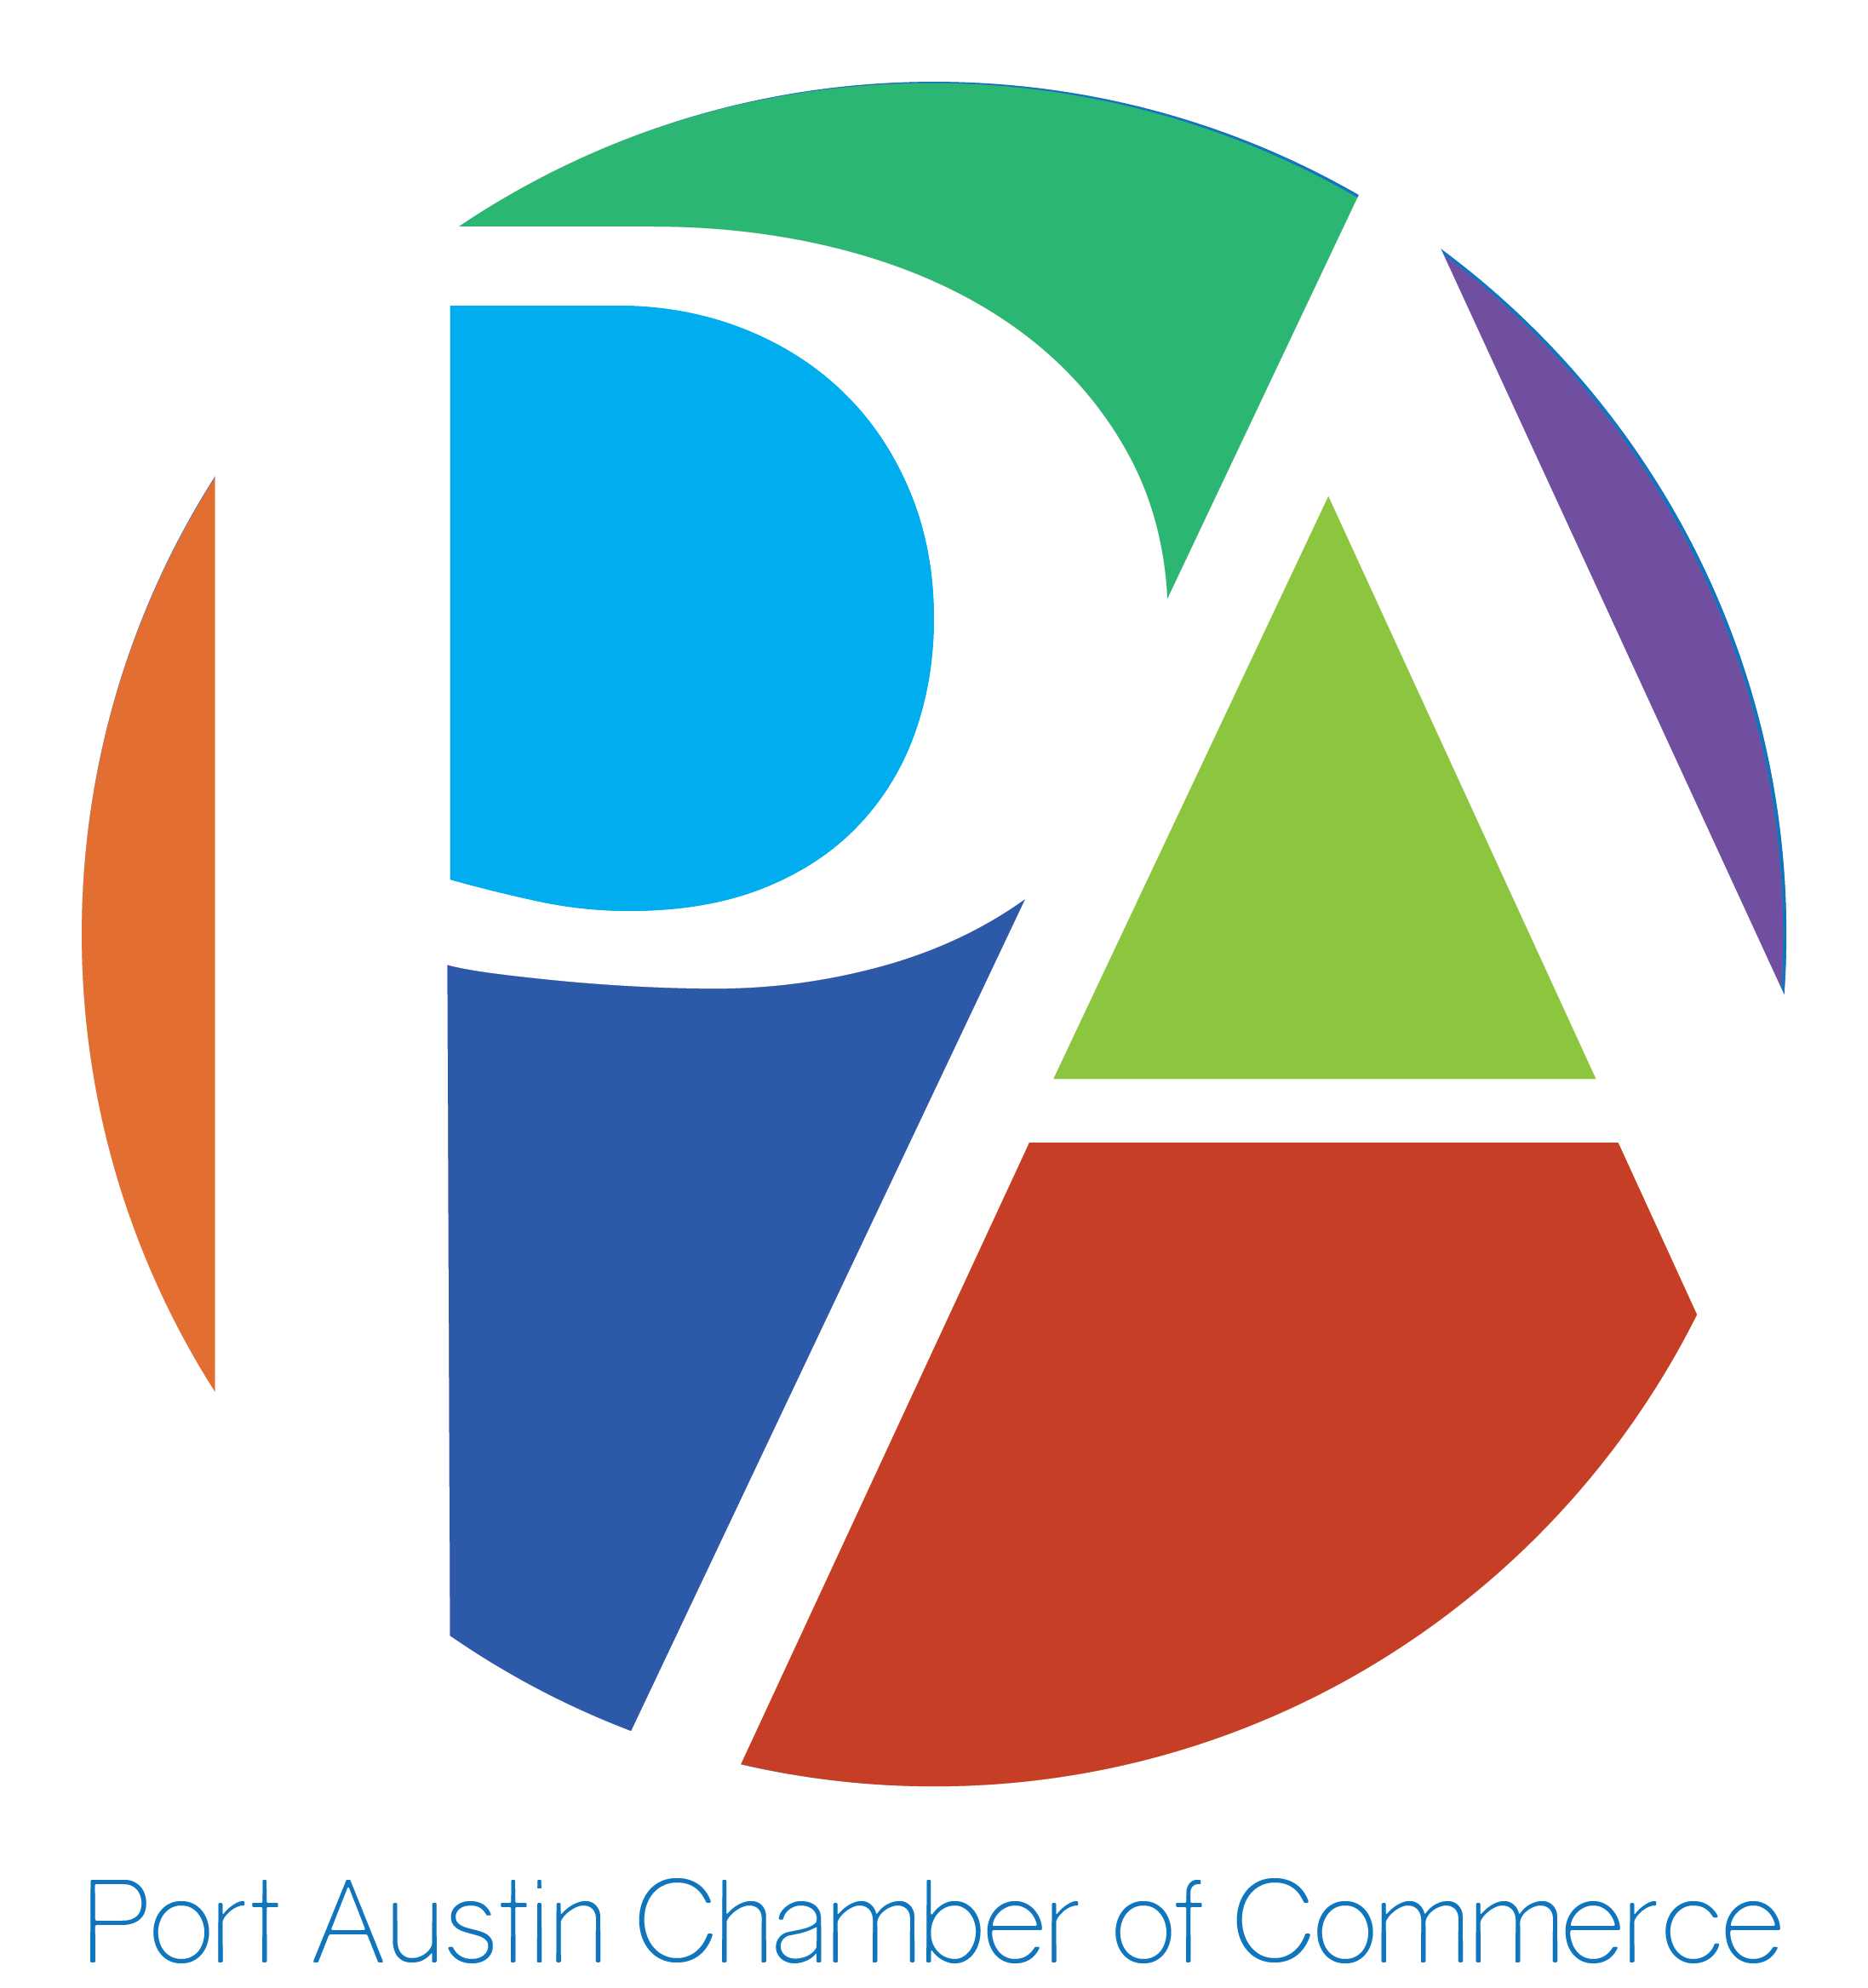 Port Austin Chamber of Commerce Logo